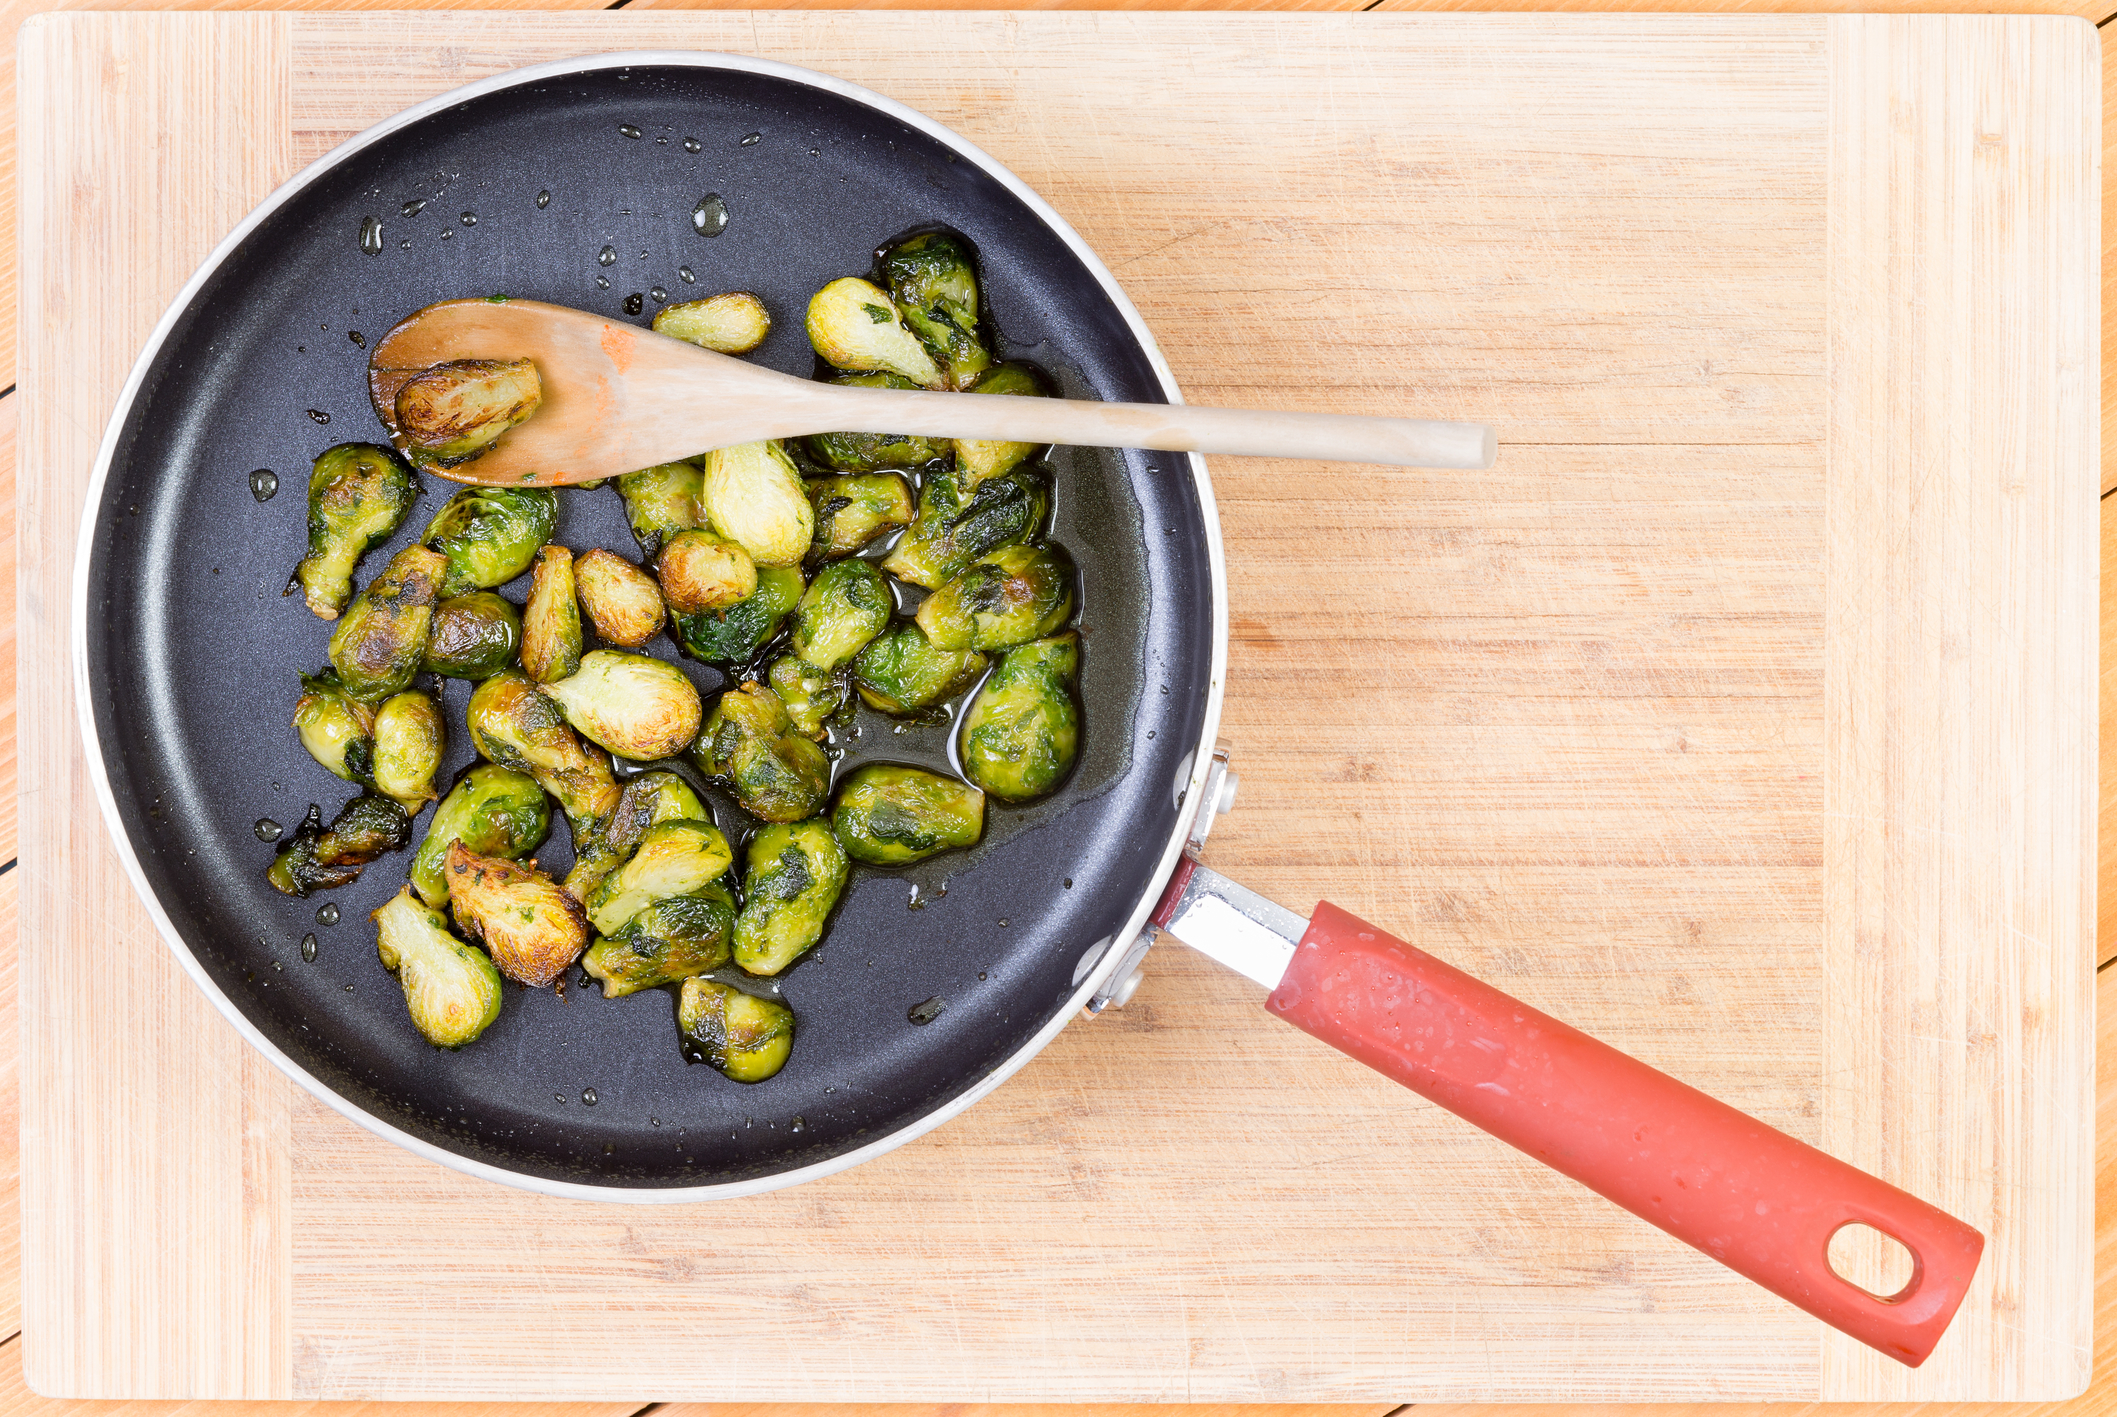 Brussel sprouts cooked in non-stick pan